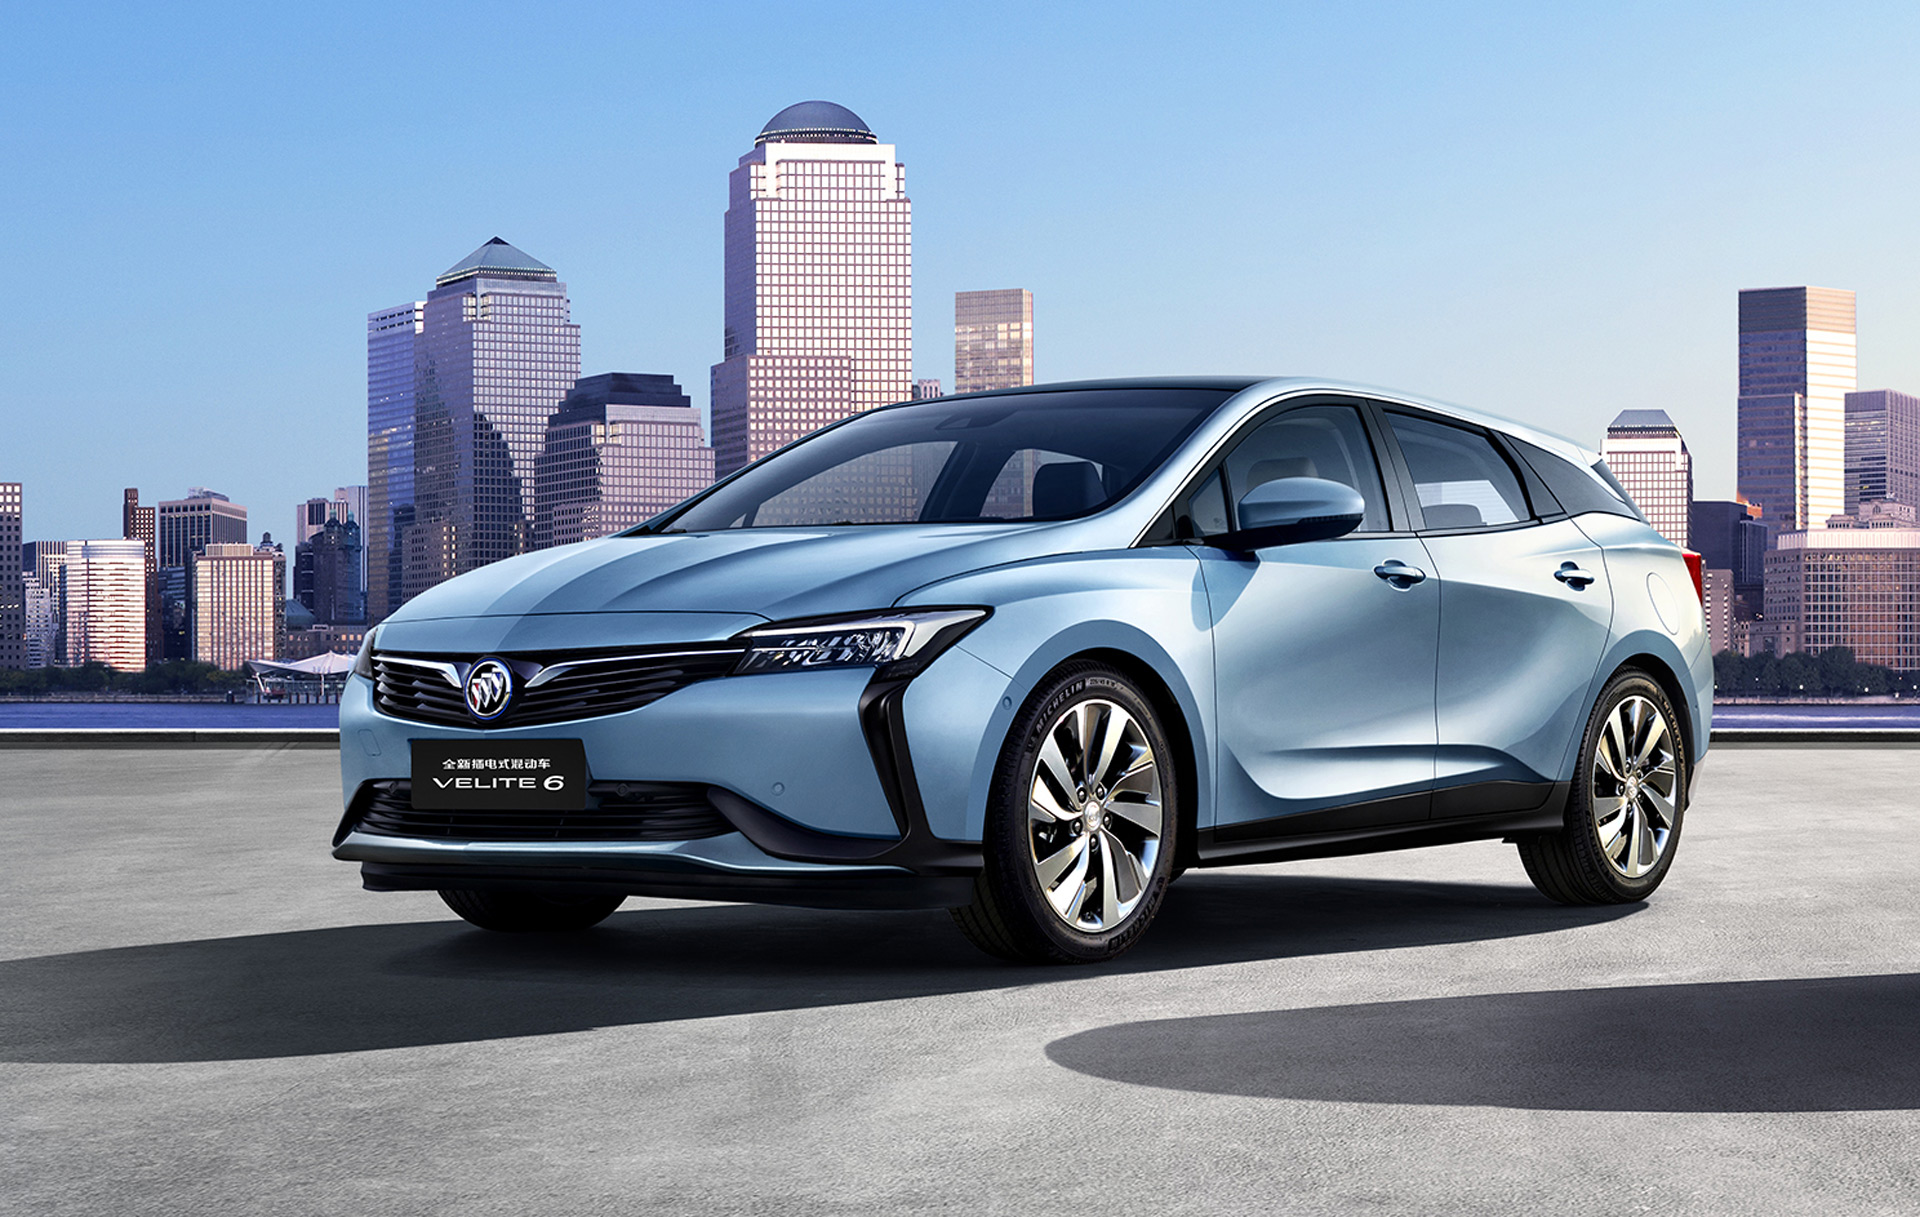 Buick Velite 6 hybrid and electric cars bound for China